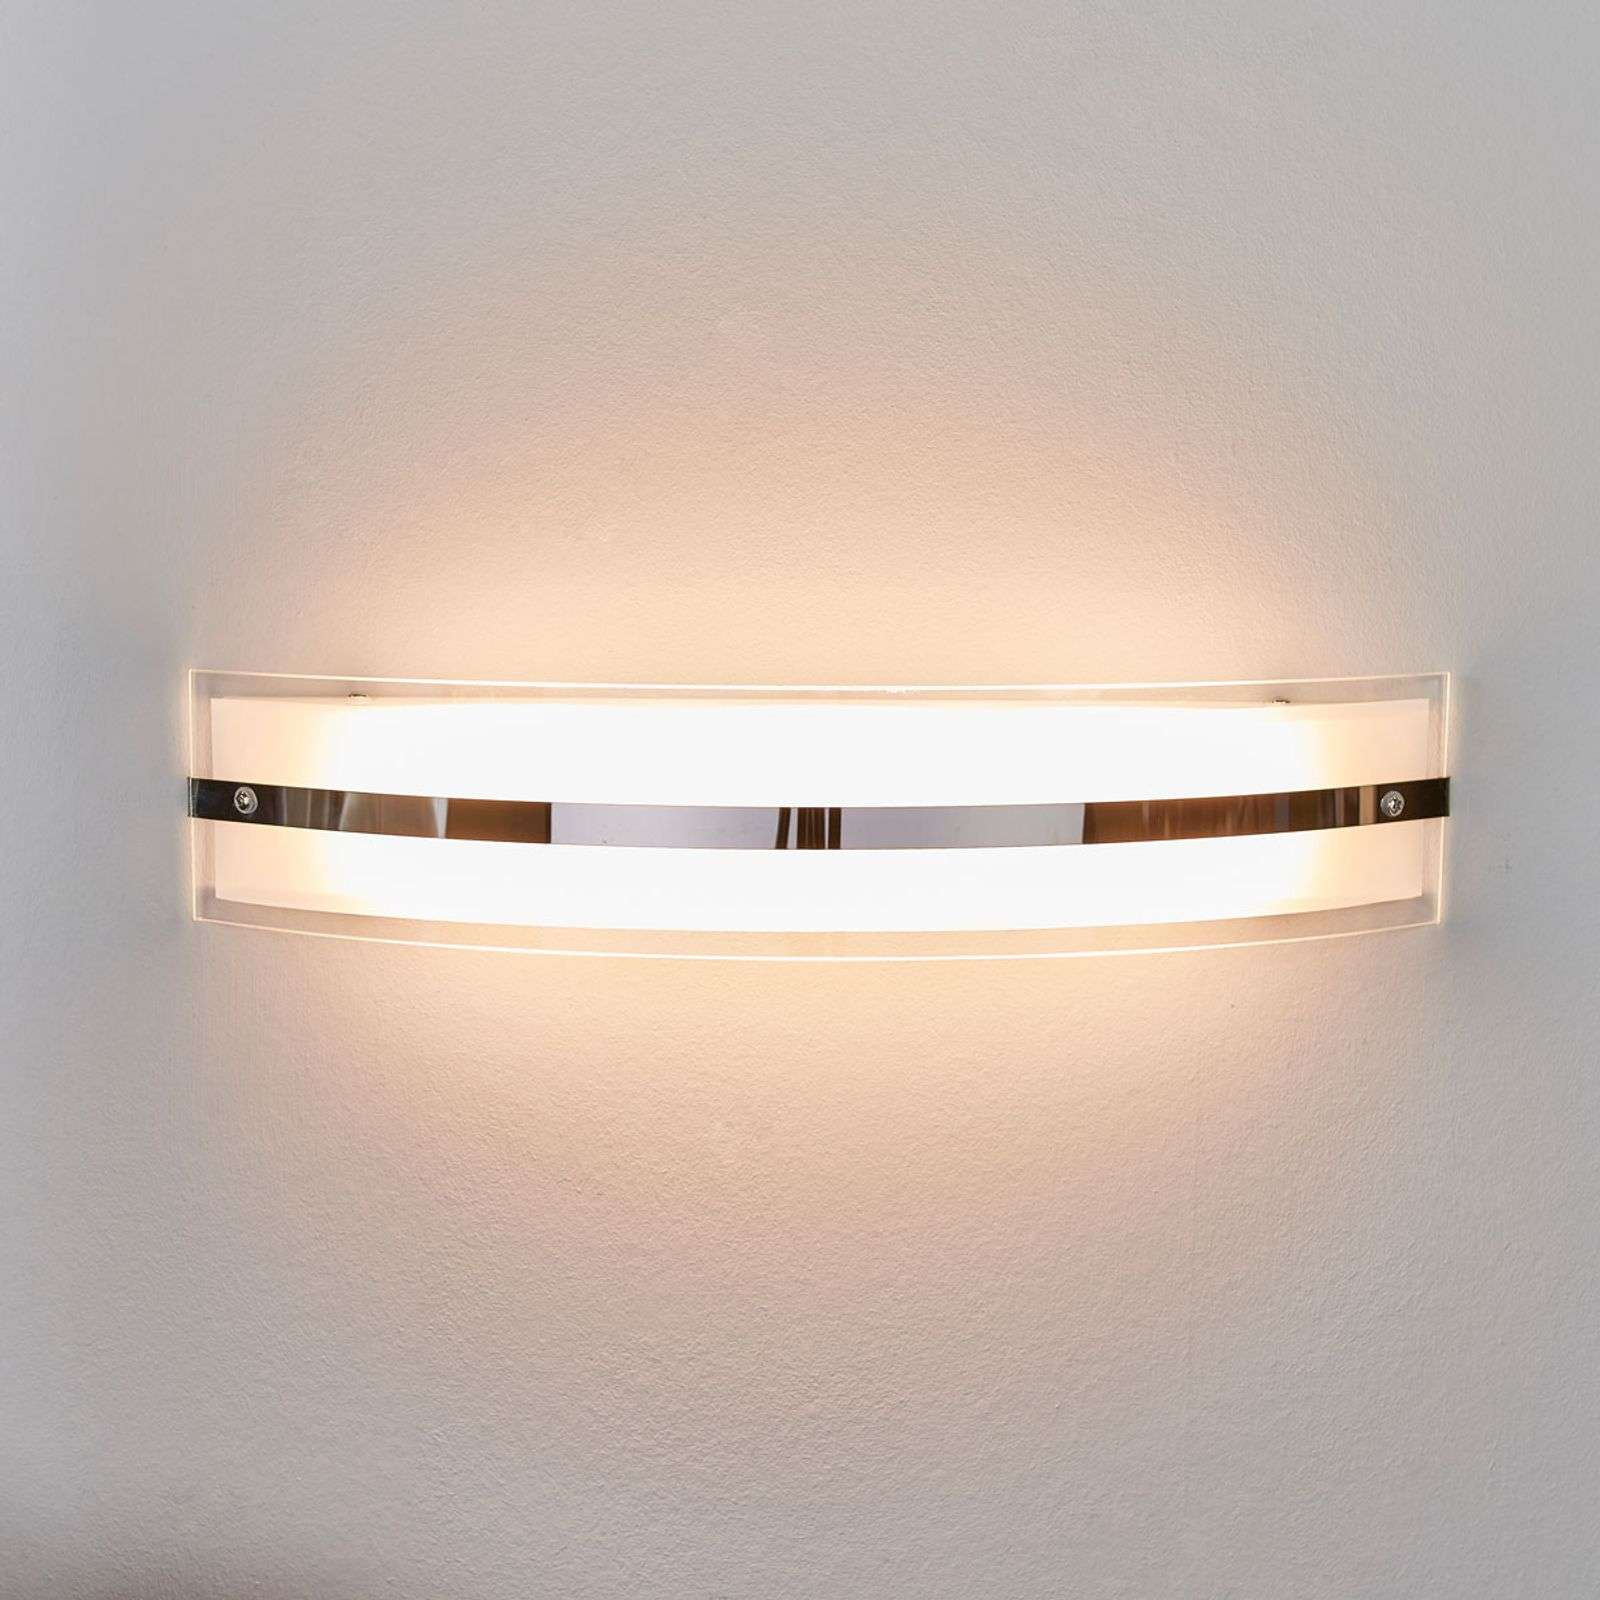 Applique LED galbée Lianda, en verre